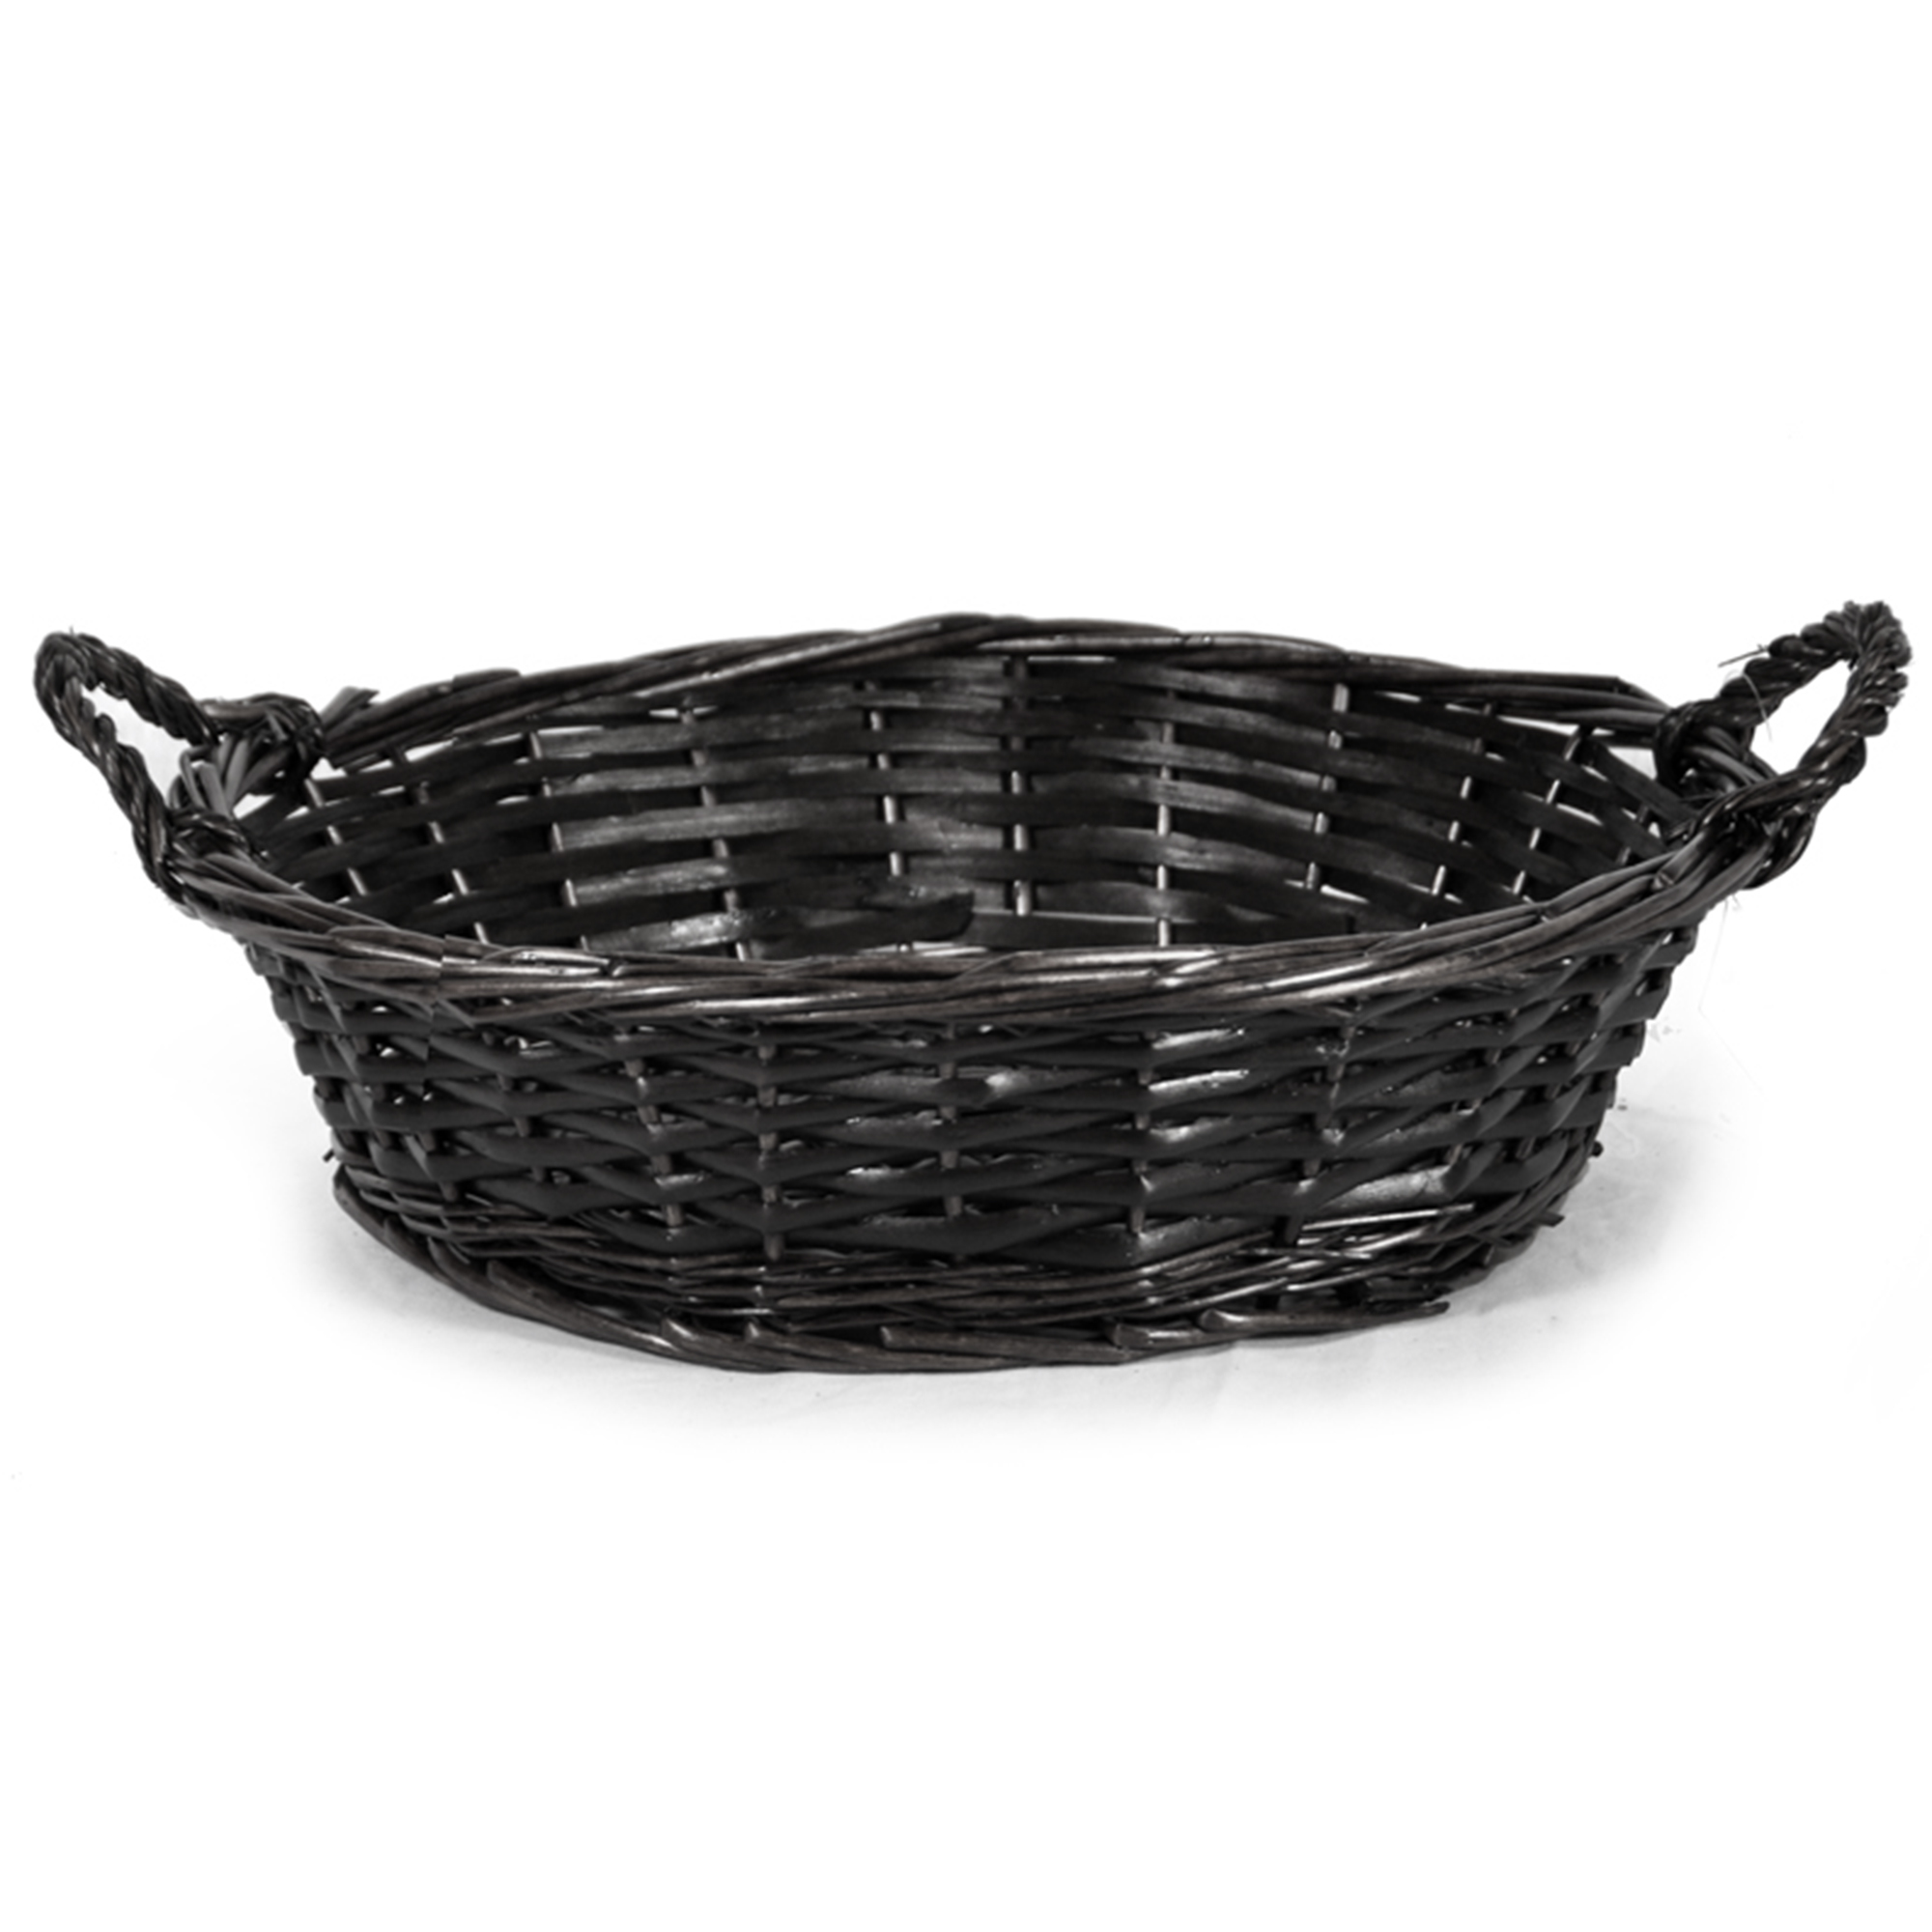 Avery Dark Stain Round Tray Basket 12in